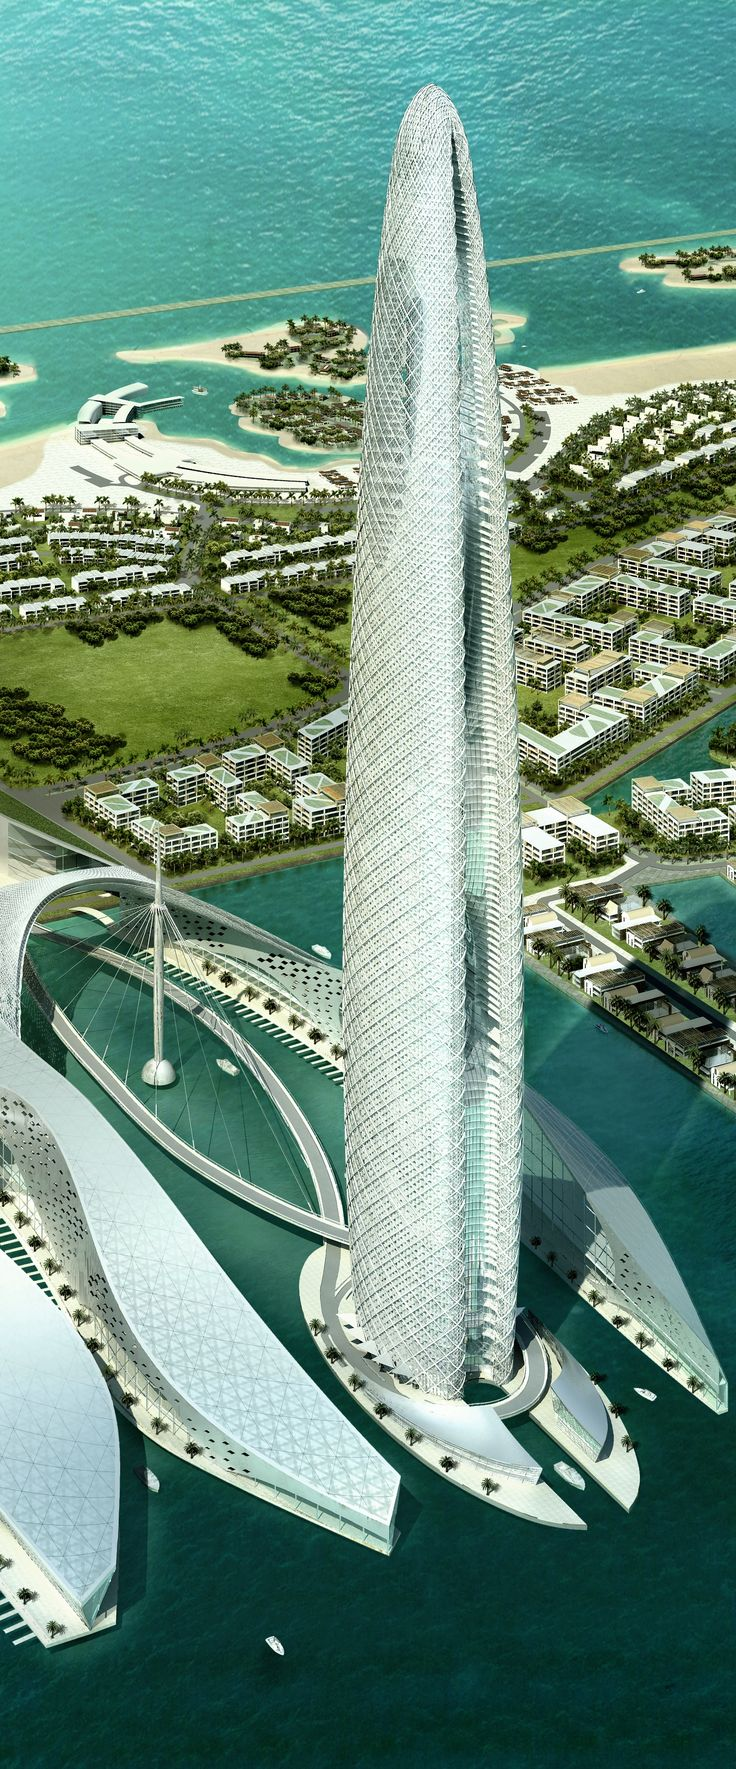 Lulu Island Tower, Abu Dhabi, UAE designed by Skidmore, Owings & Merrill (SOM) Architects :: 75 floors, height 400m